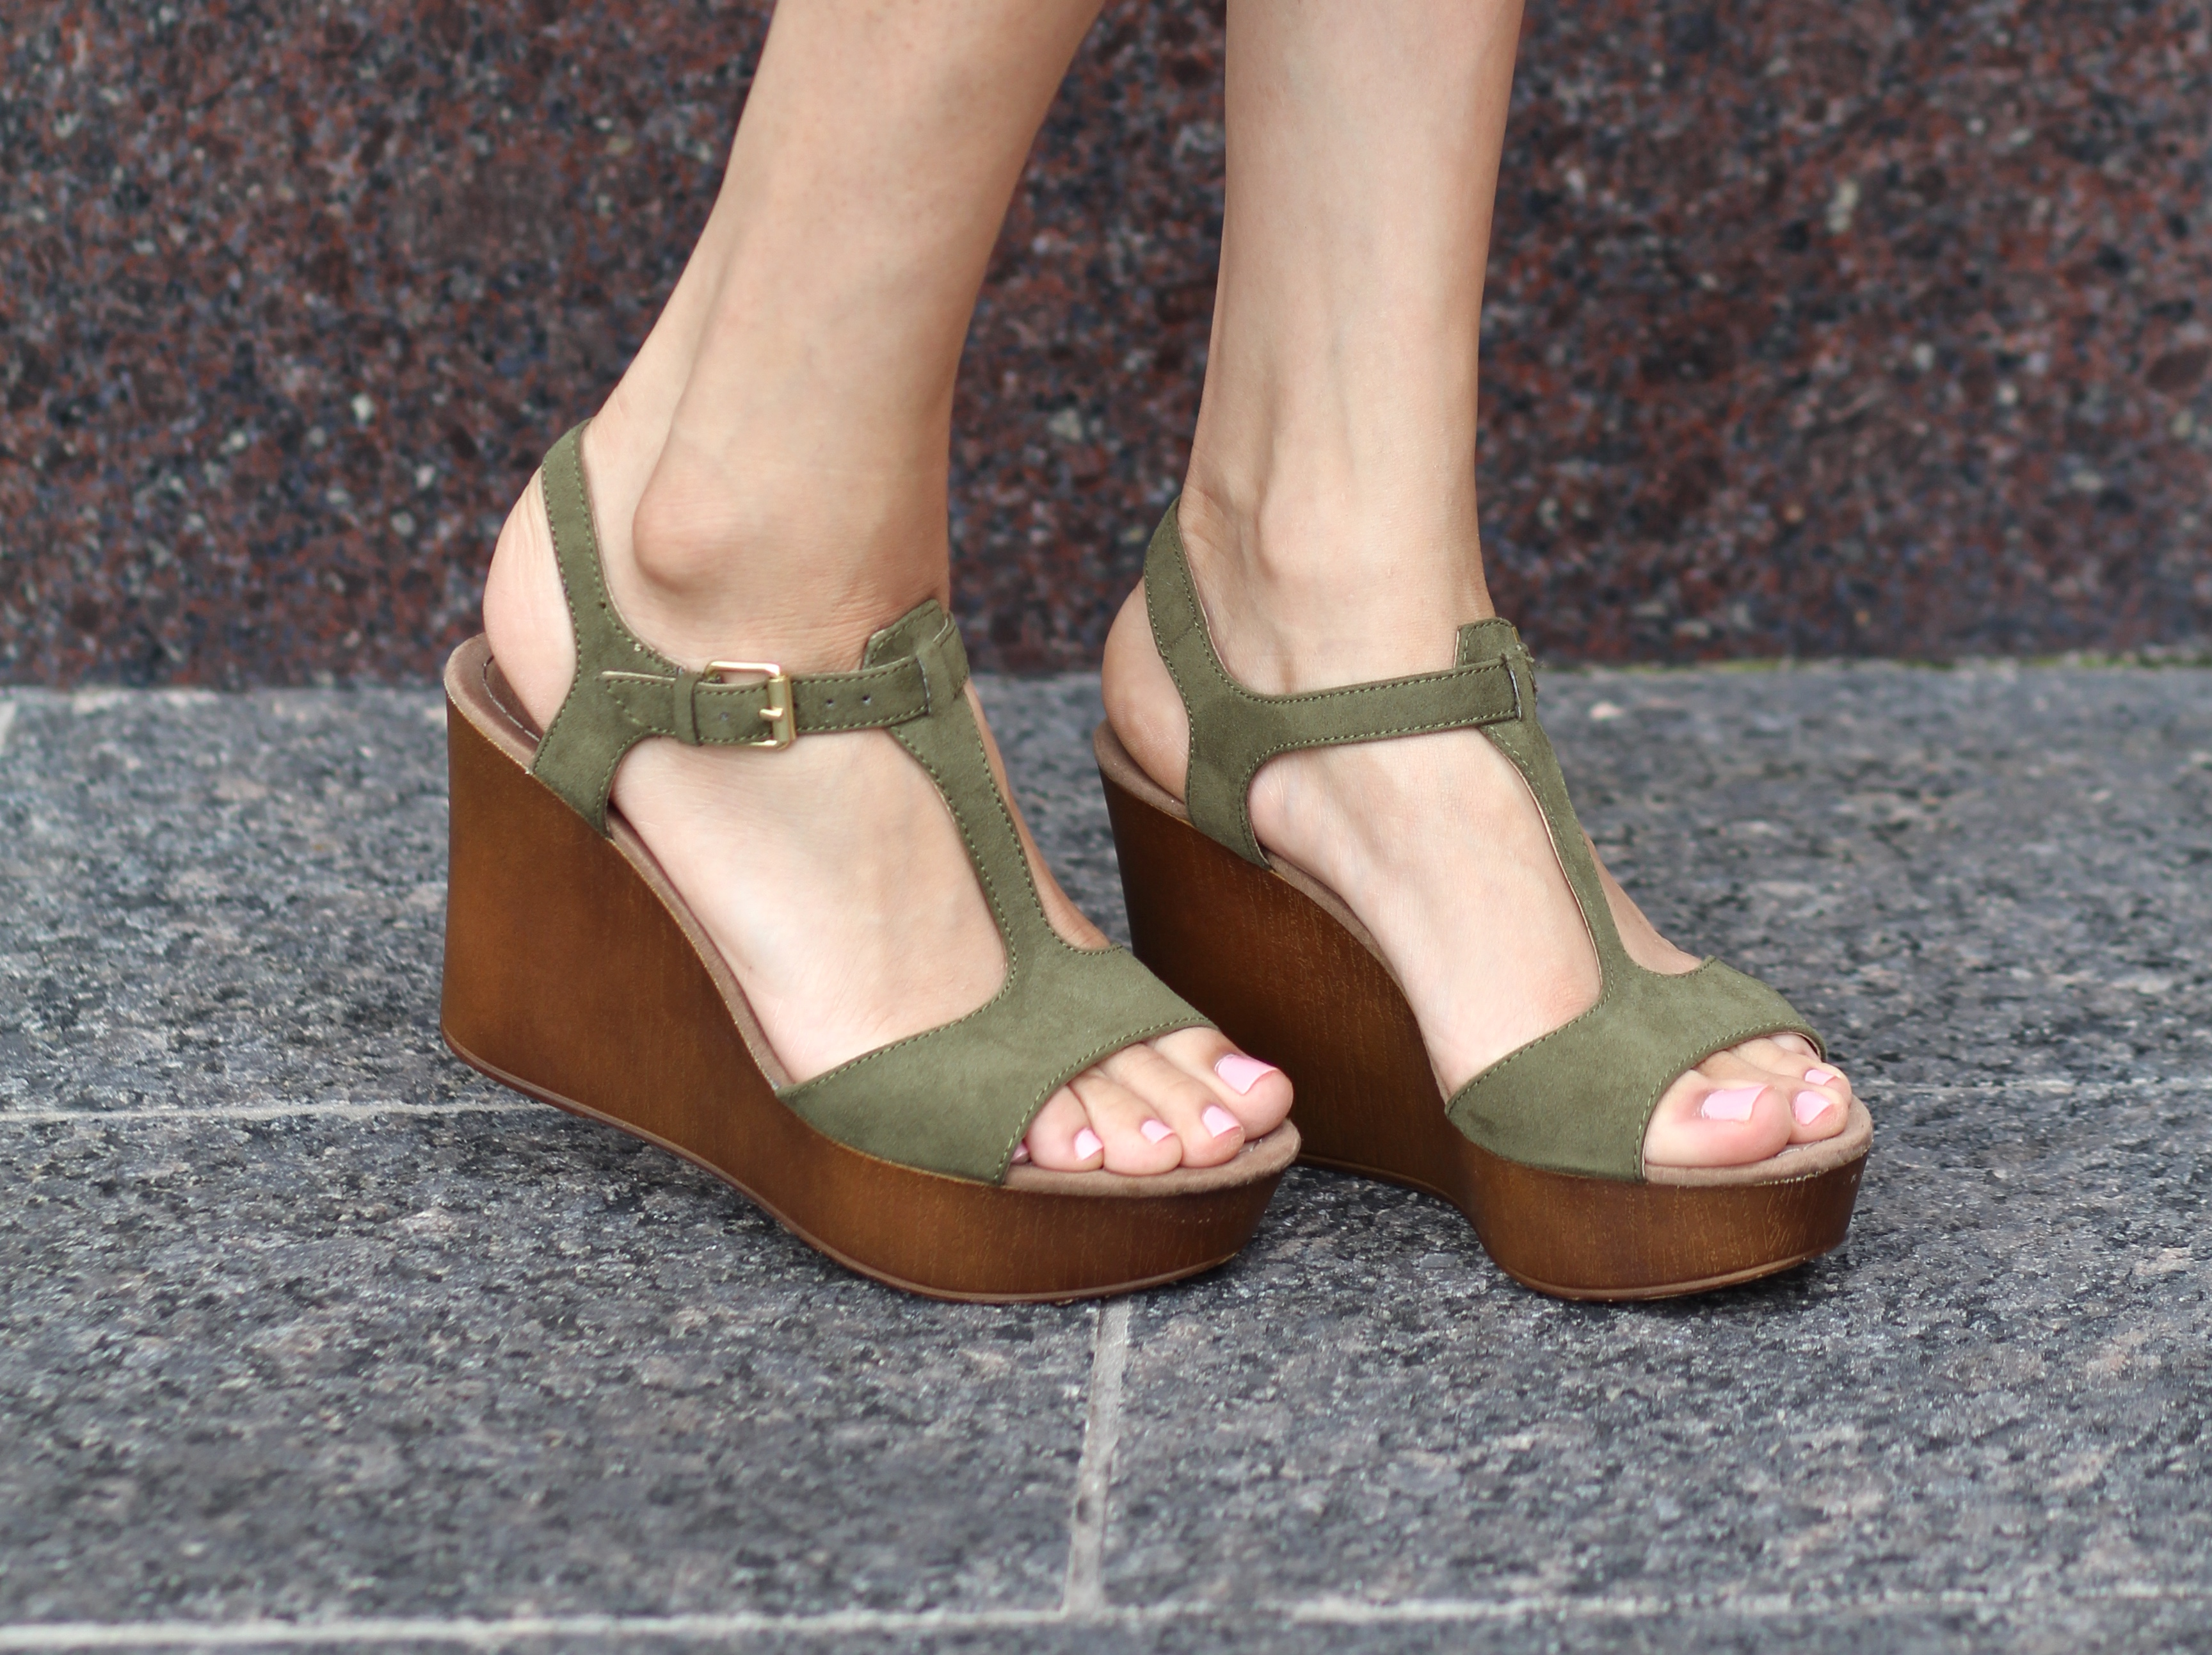 70's style platform wedges